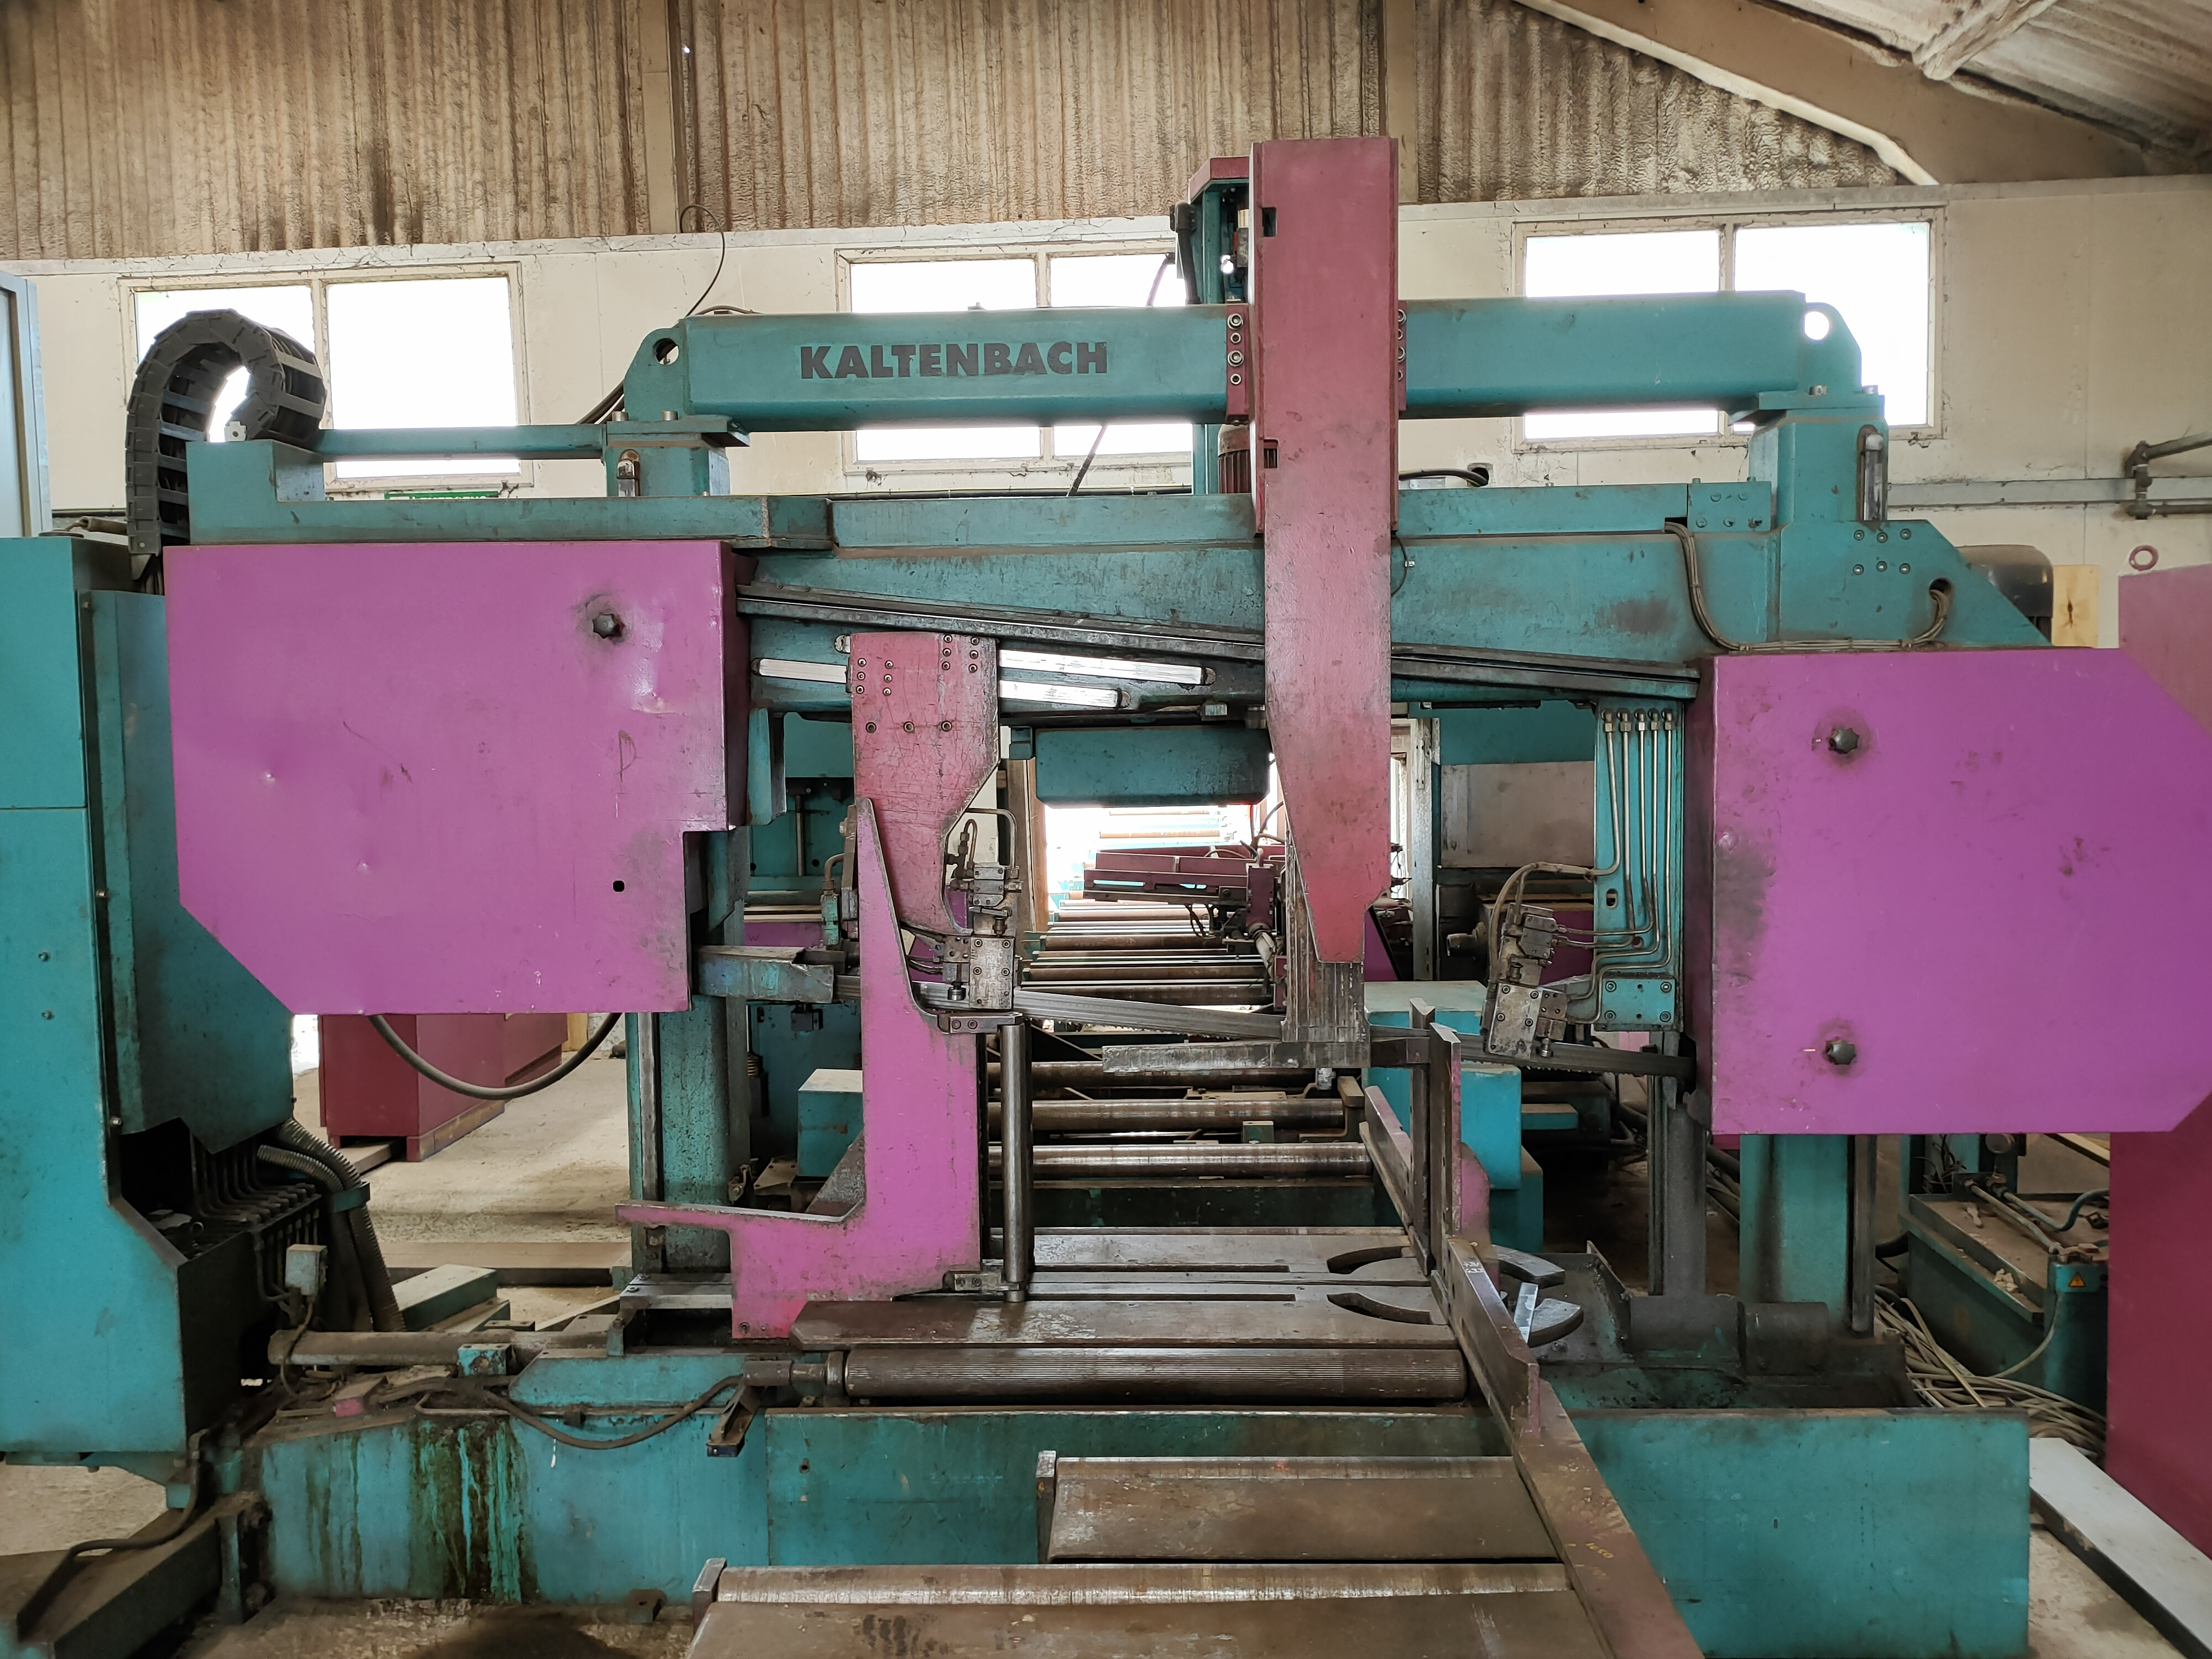 Kaltenbach Sawing & Drilling Line - Image 4 of 8